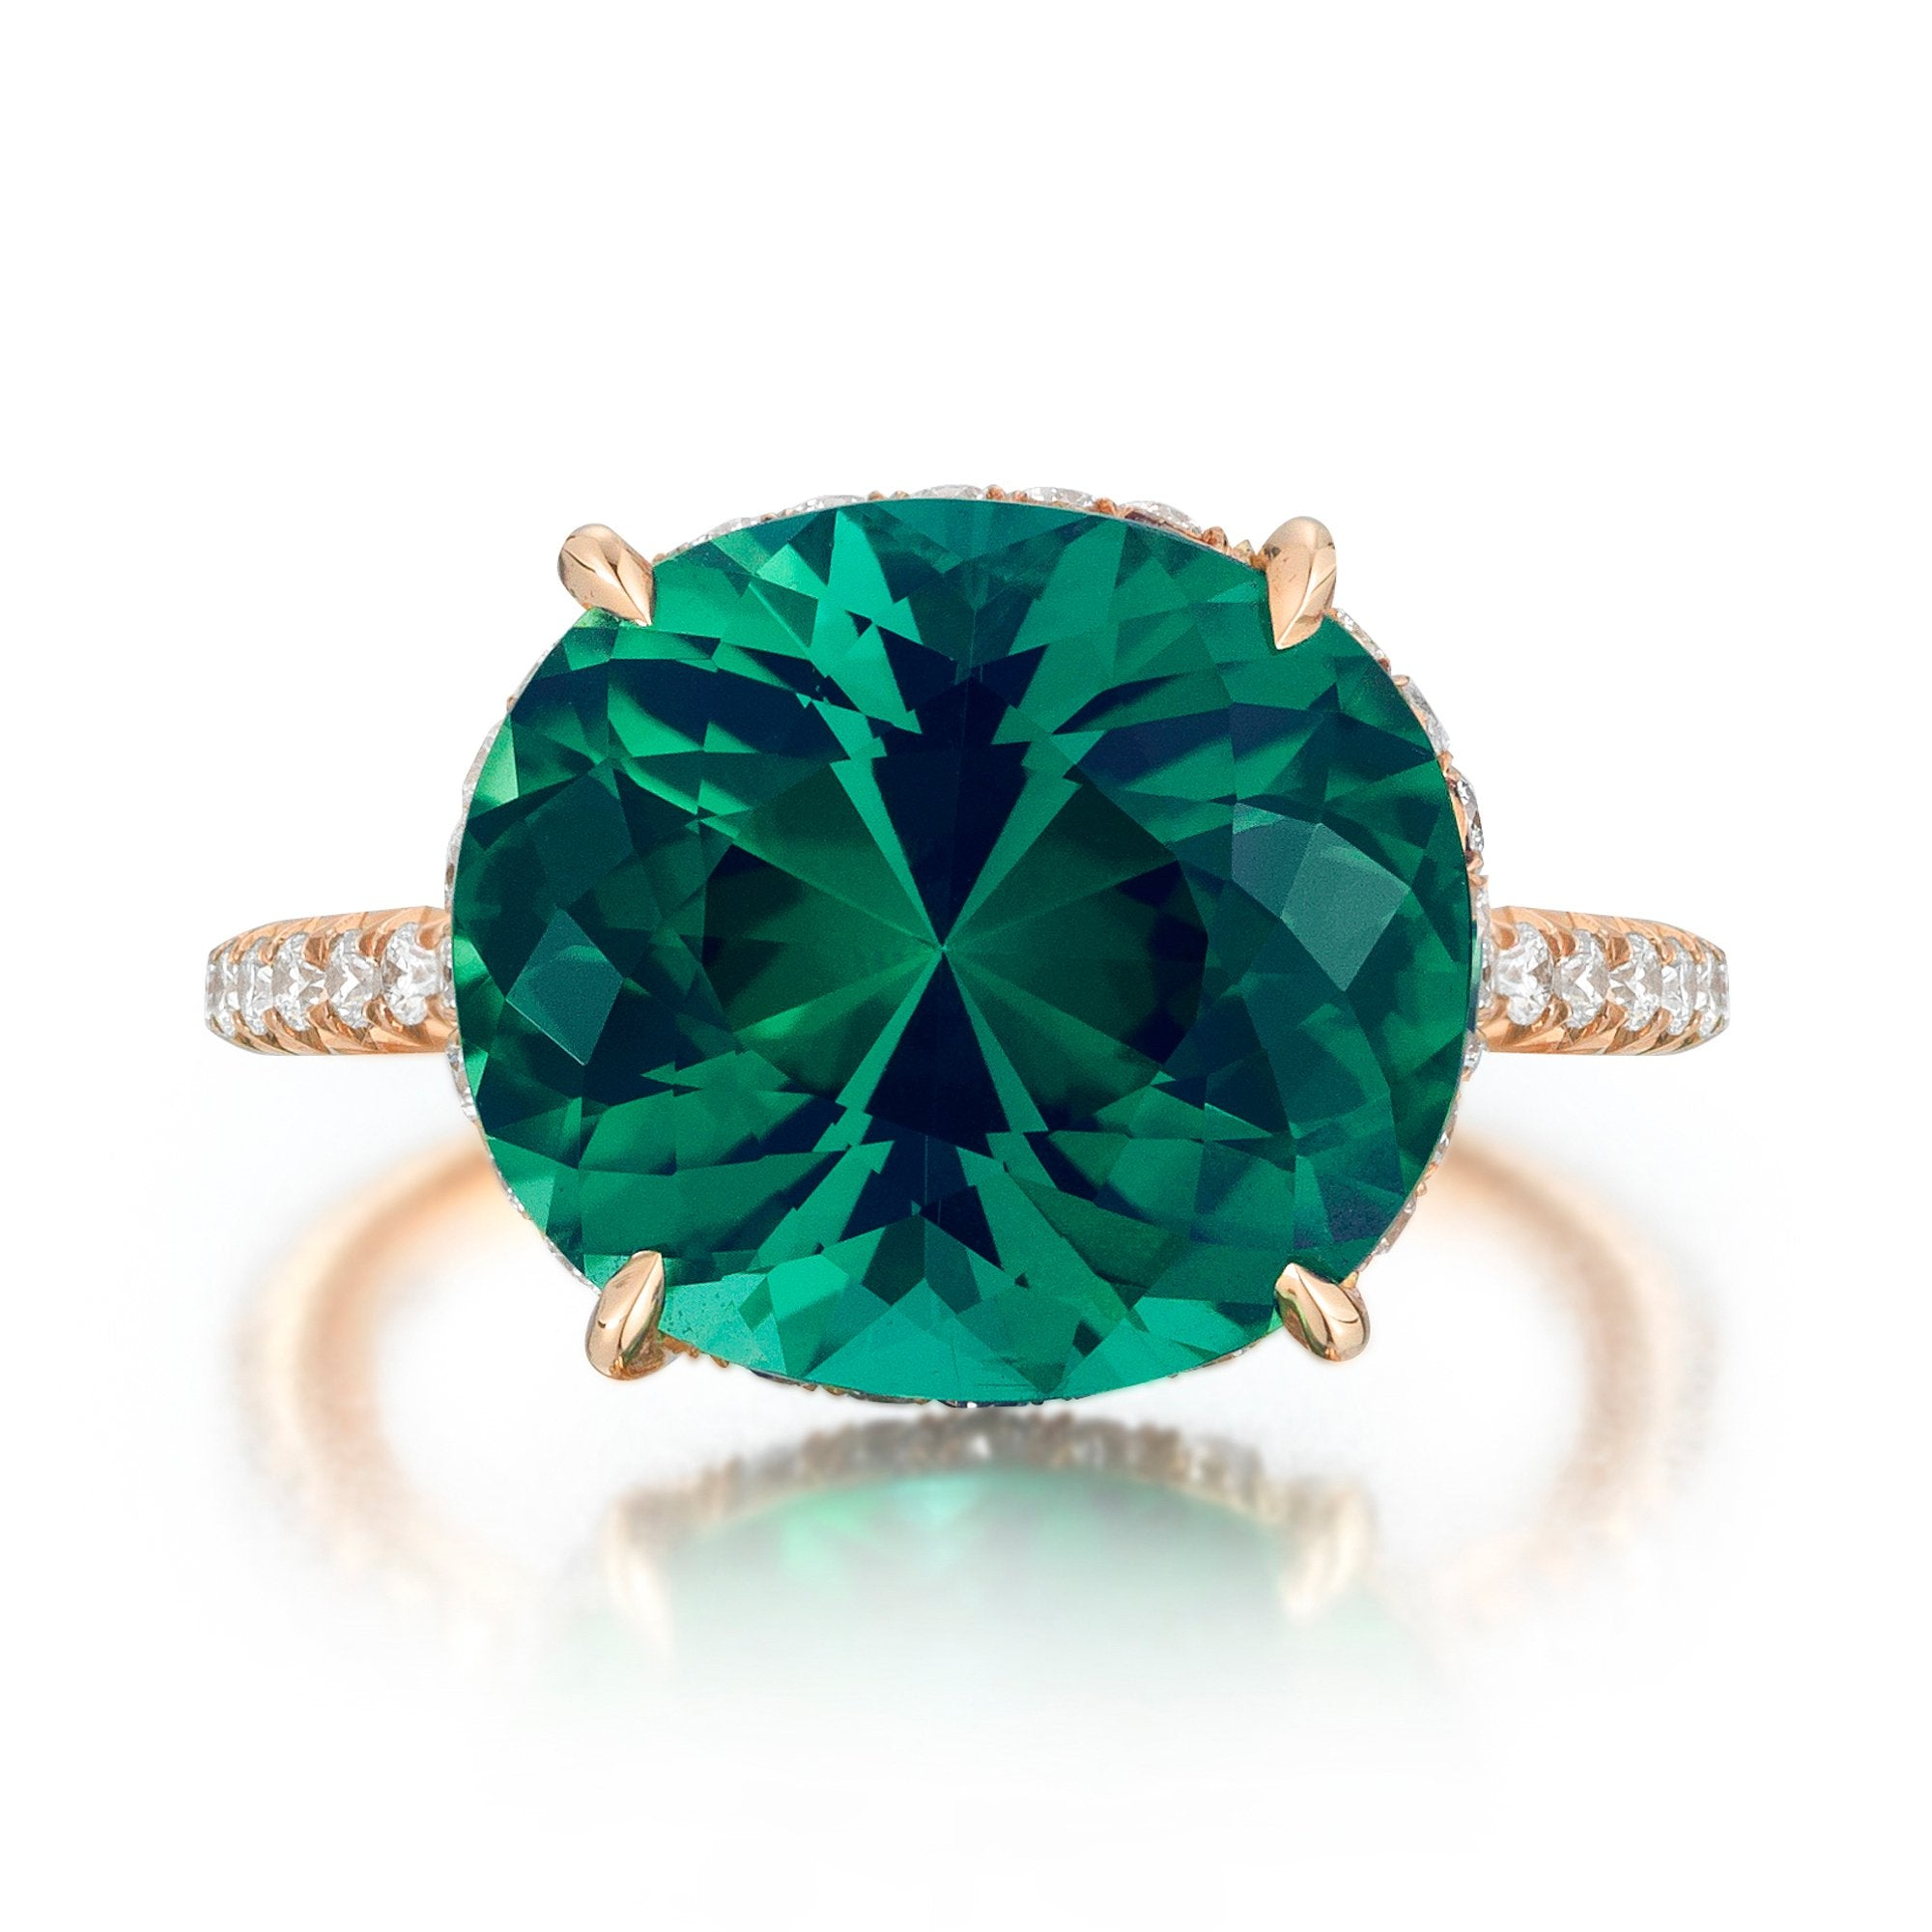 diamond emeral an tourmaline products ring green costagli paolo rings and